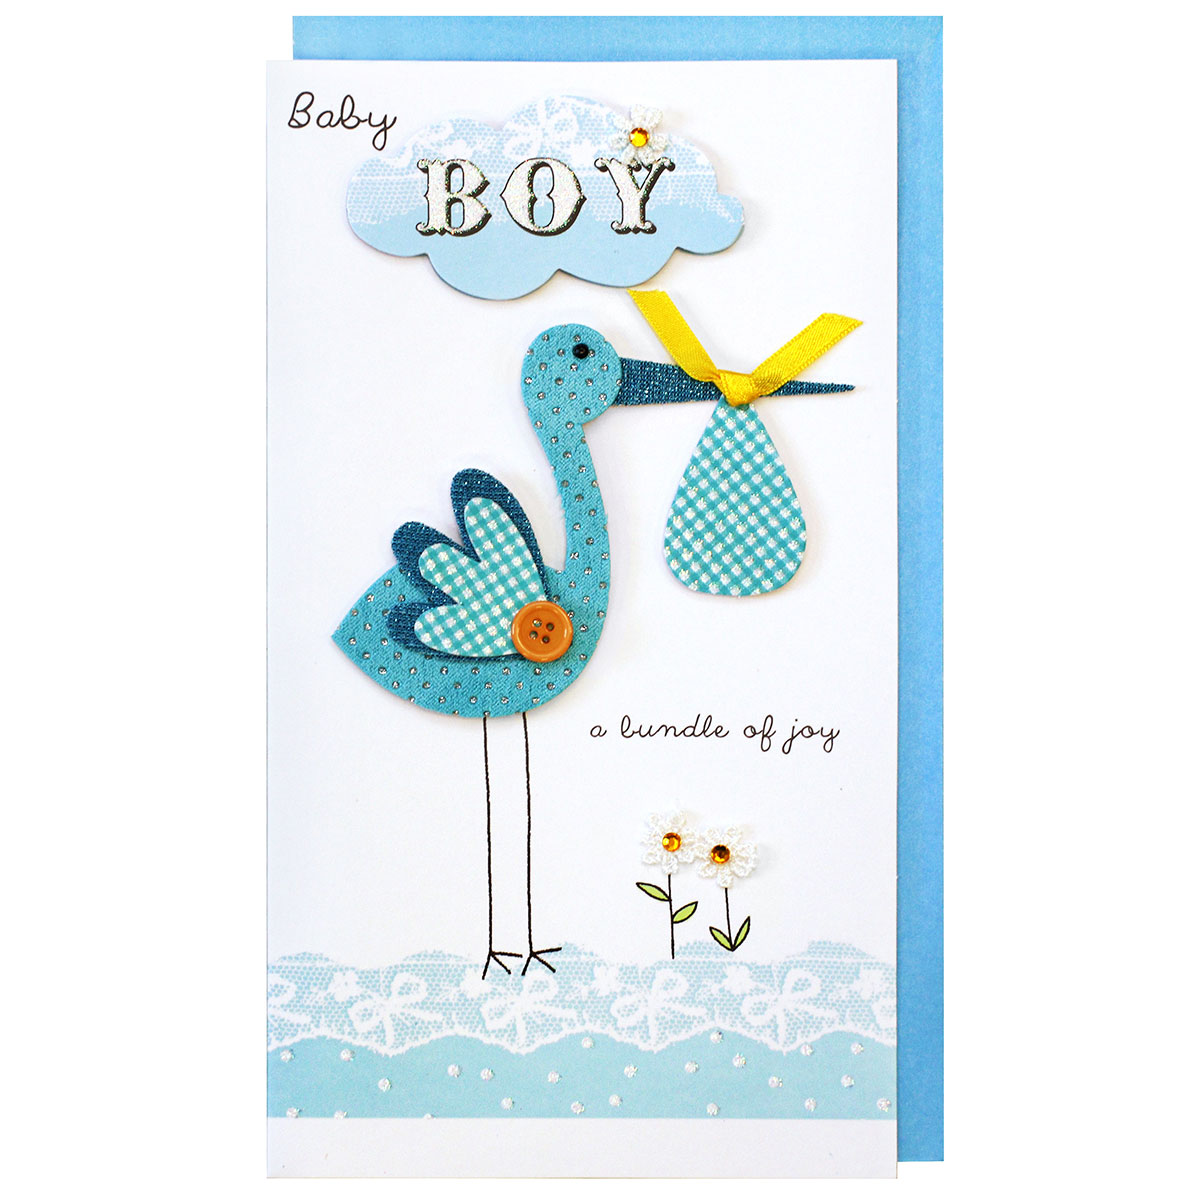 Second Nature Blue Stork 'Baby Boy' Card